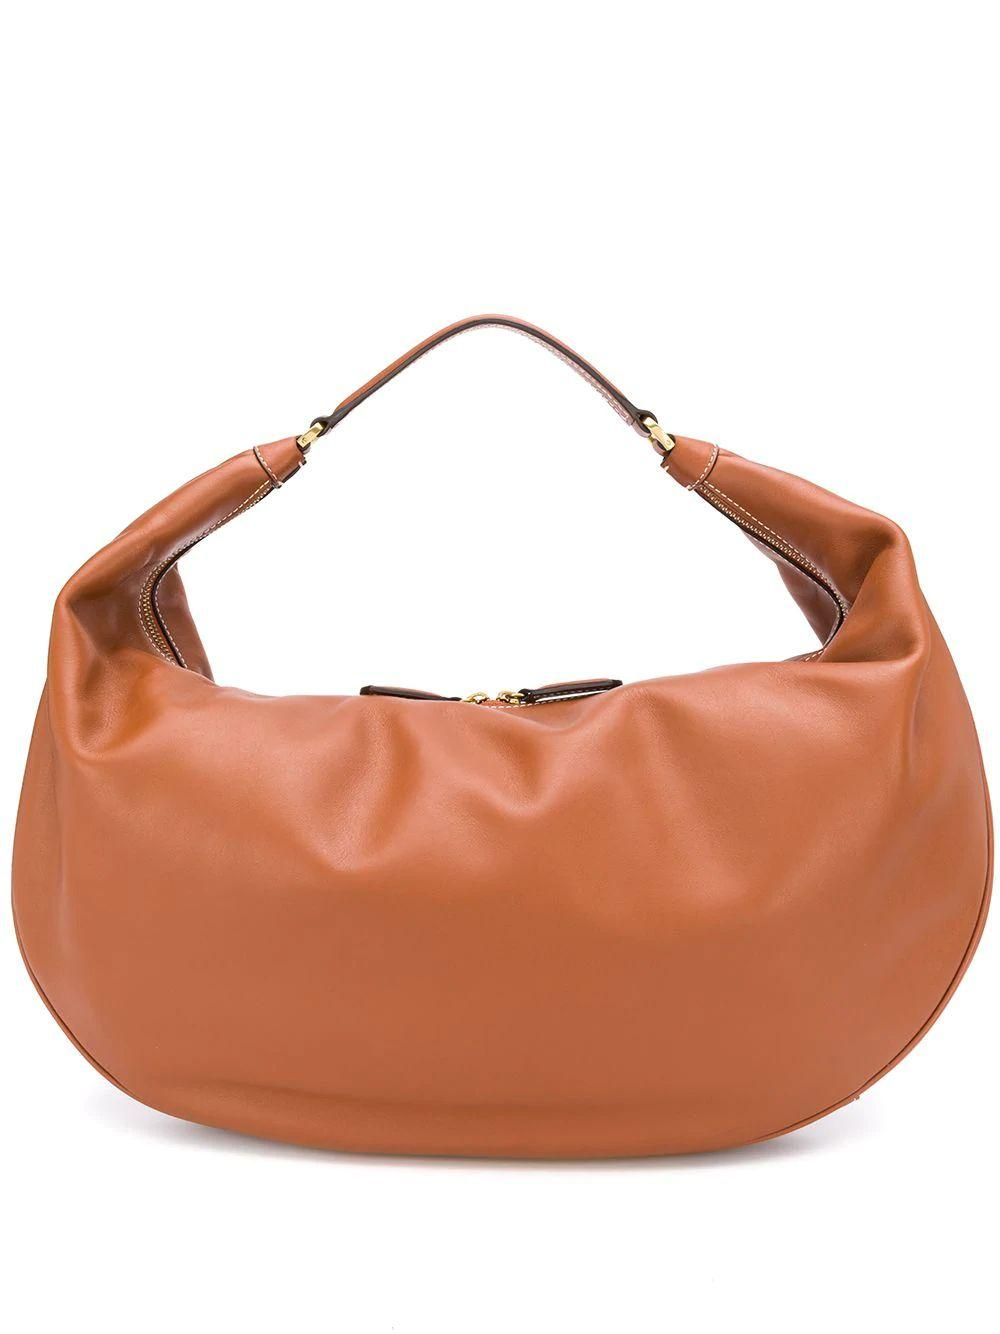 Large Sasha Bag Item # 207-9310-TAN